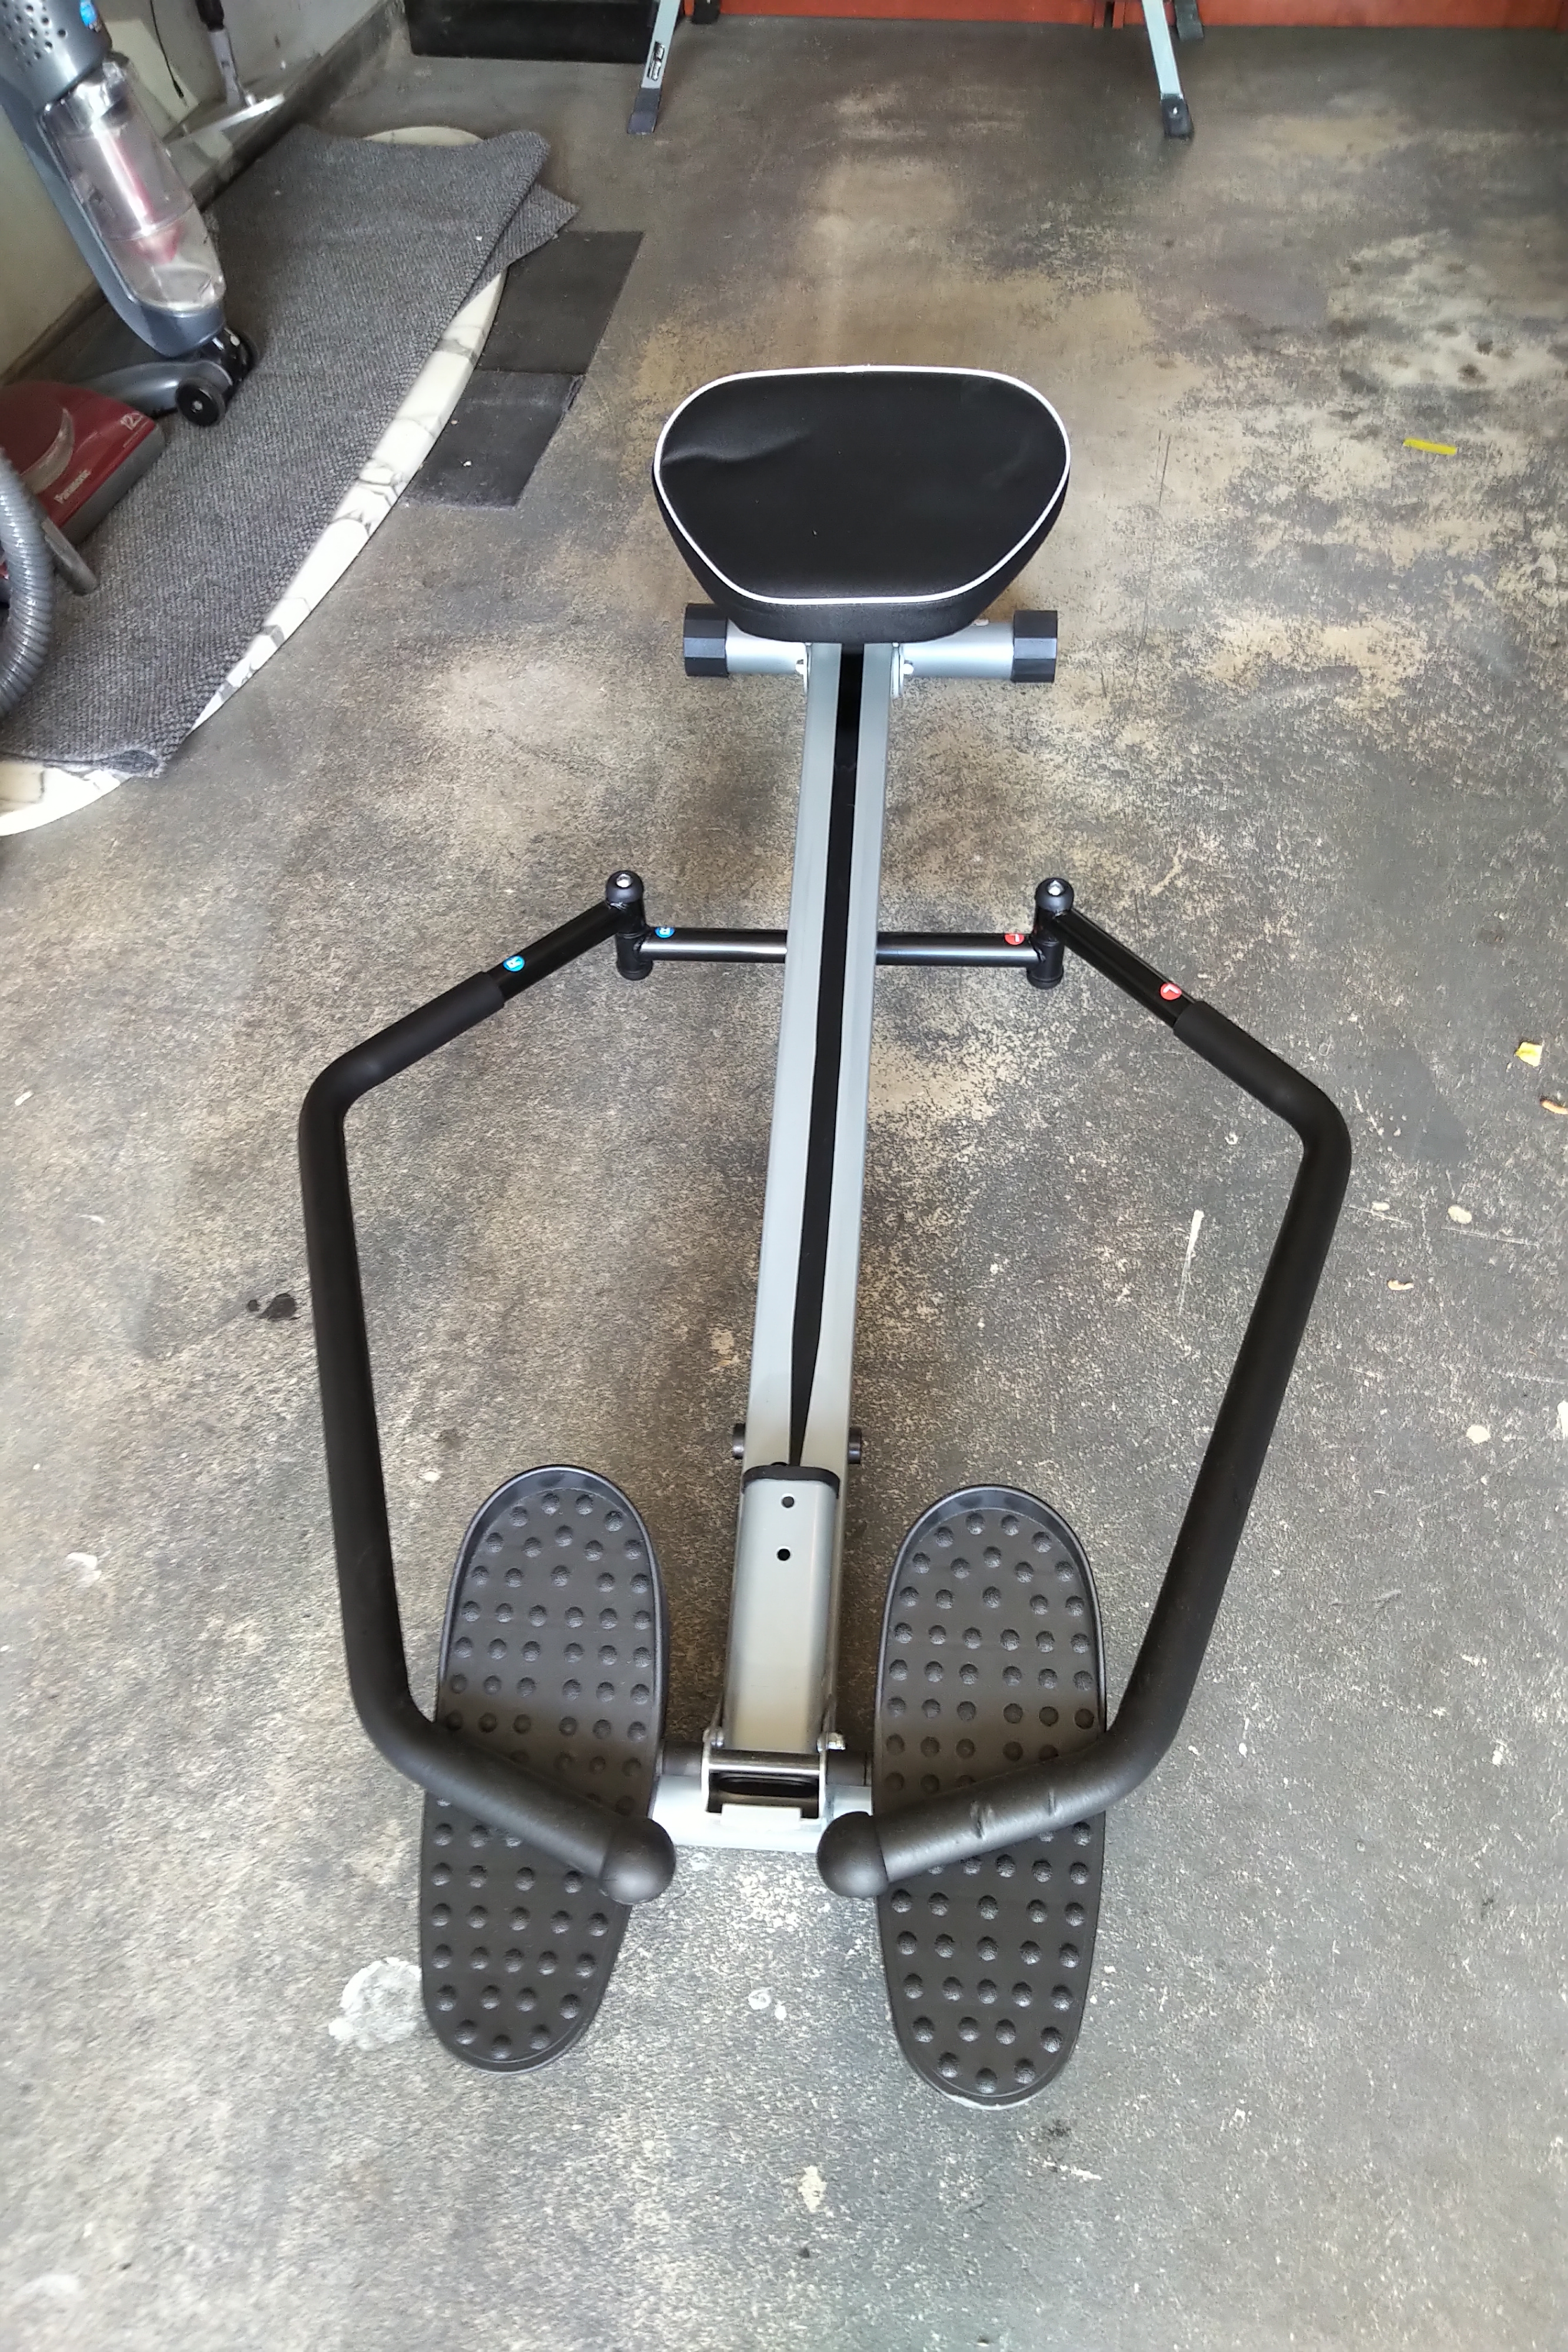 Home Fitness Equipment - Moving, Must Sell. Used but in great condition.